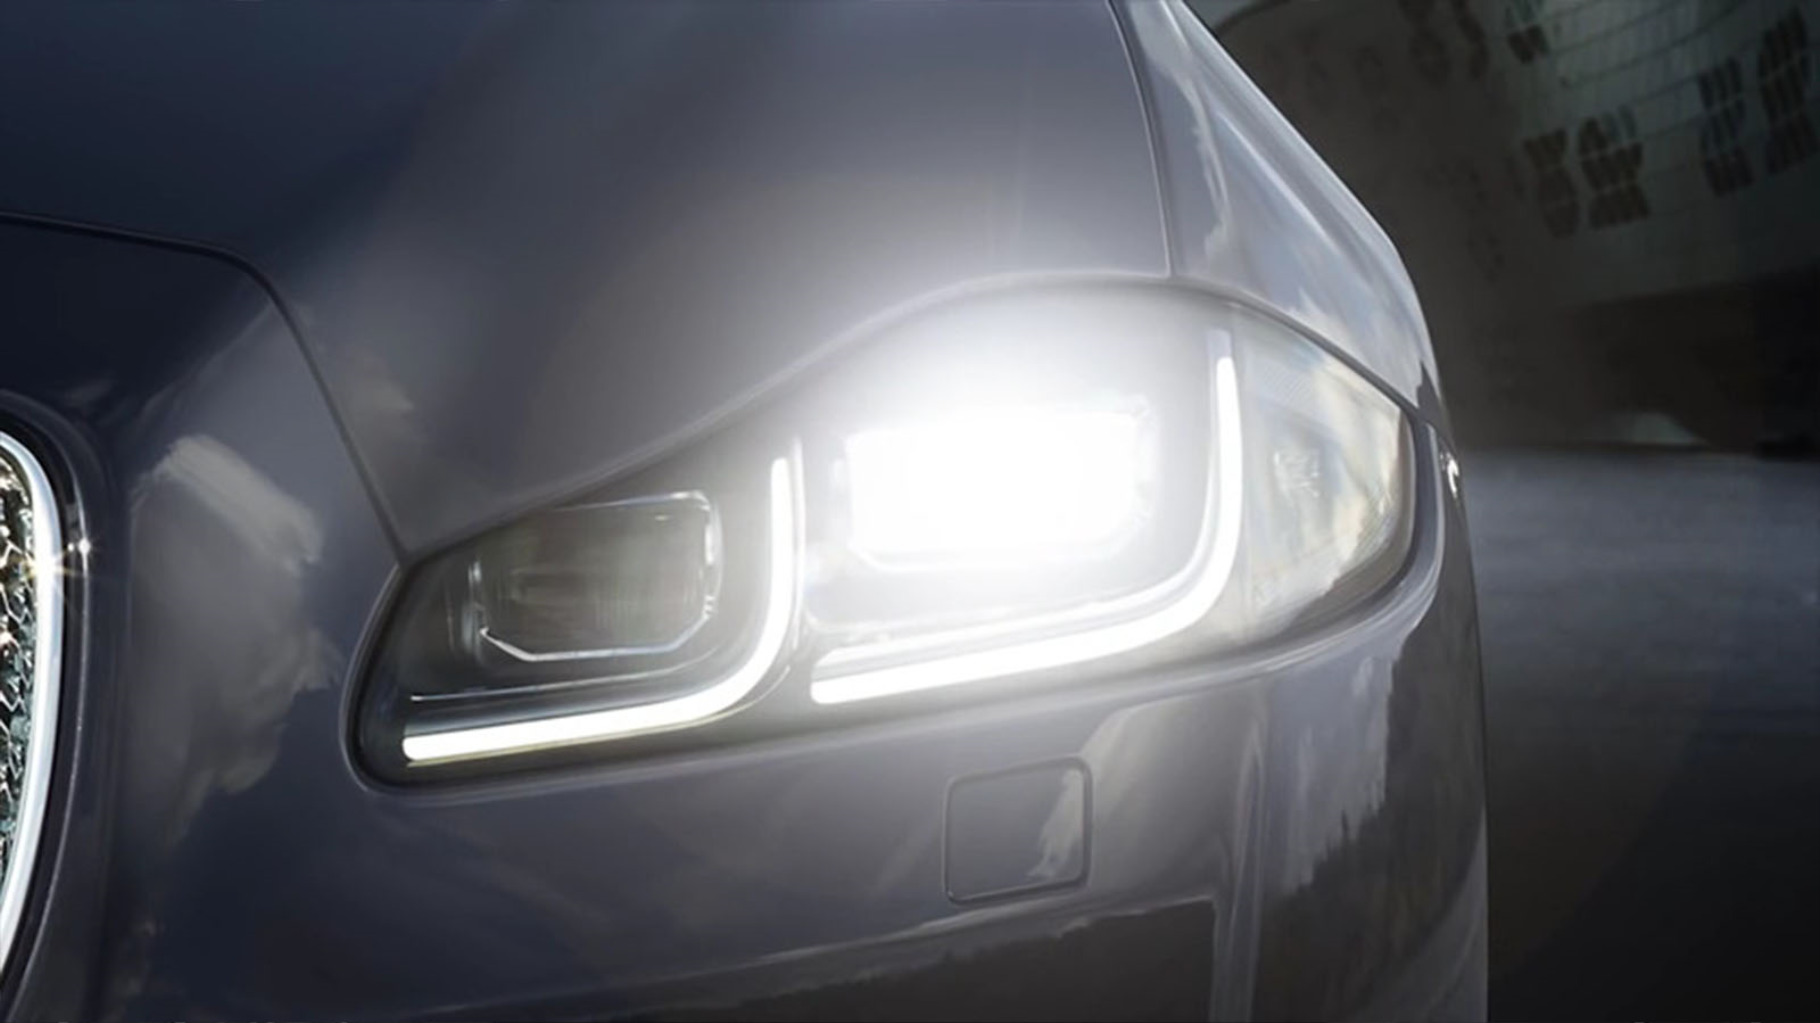 Close-up of Jaguar XJ's automatic headlights and intelligent high beam assist.